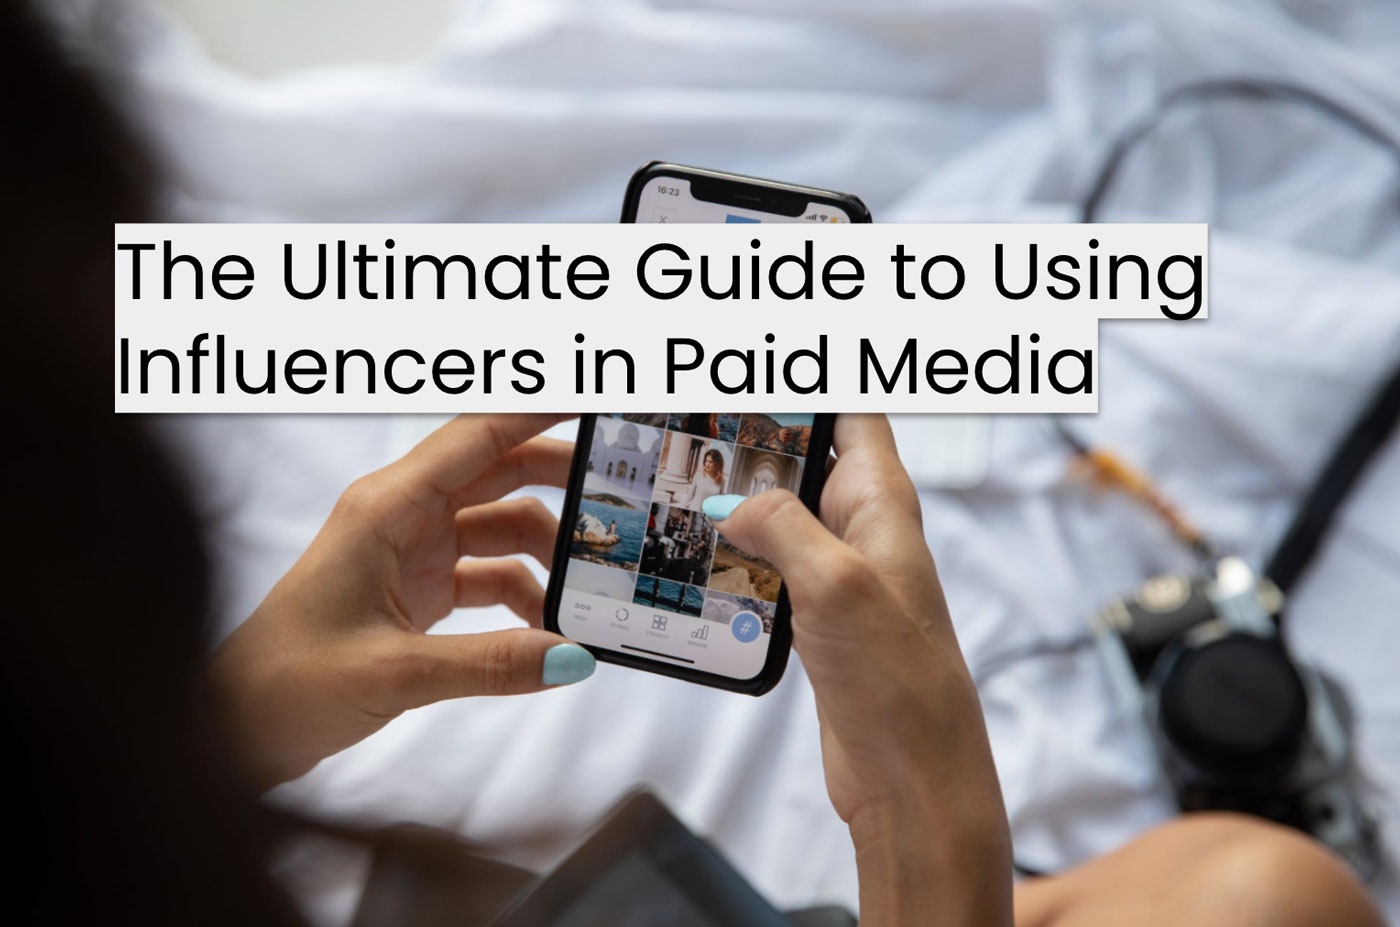 By pairing the impact of influencer marketing with paid ads, the value of your paid media will be even higher than it would have been without integrating your two acquisition channels.